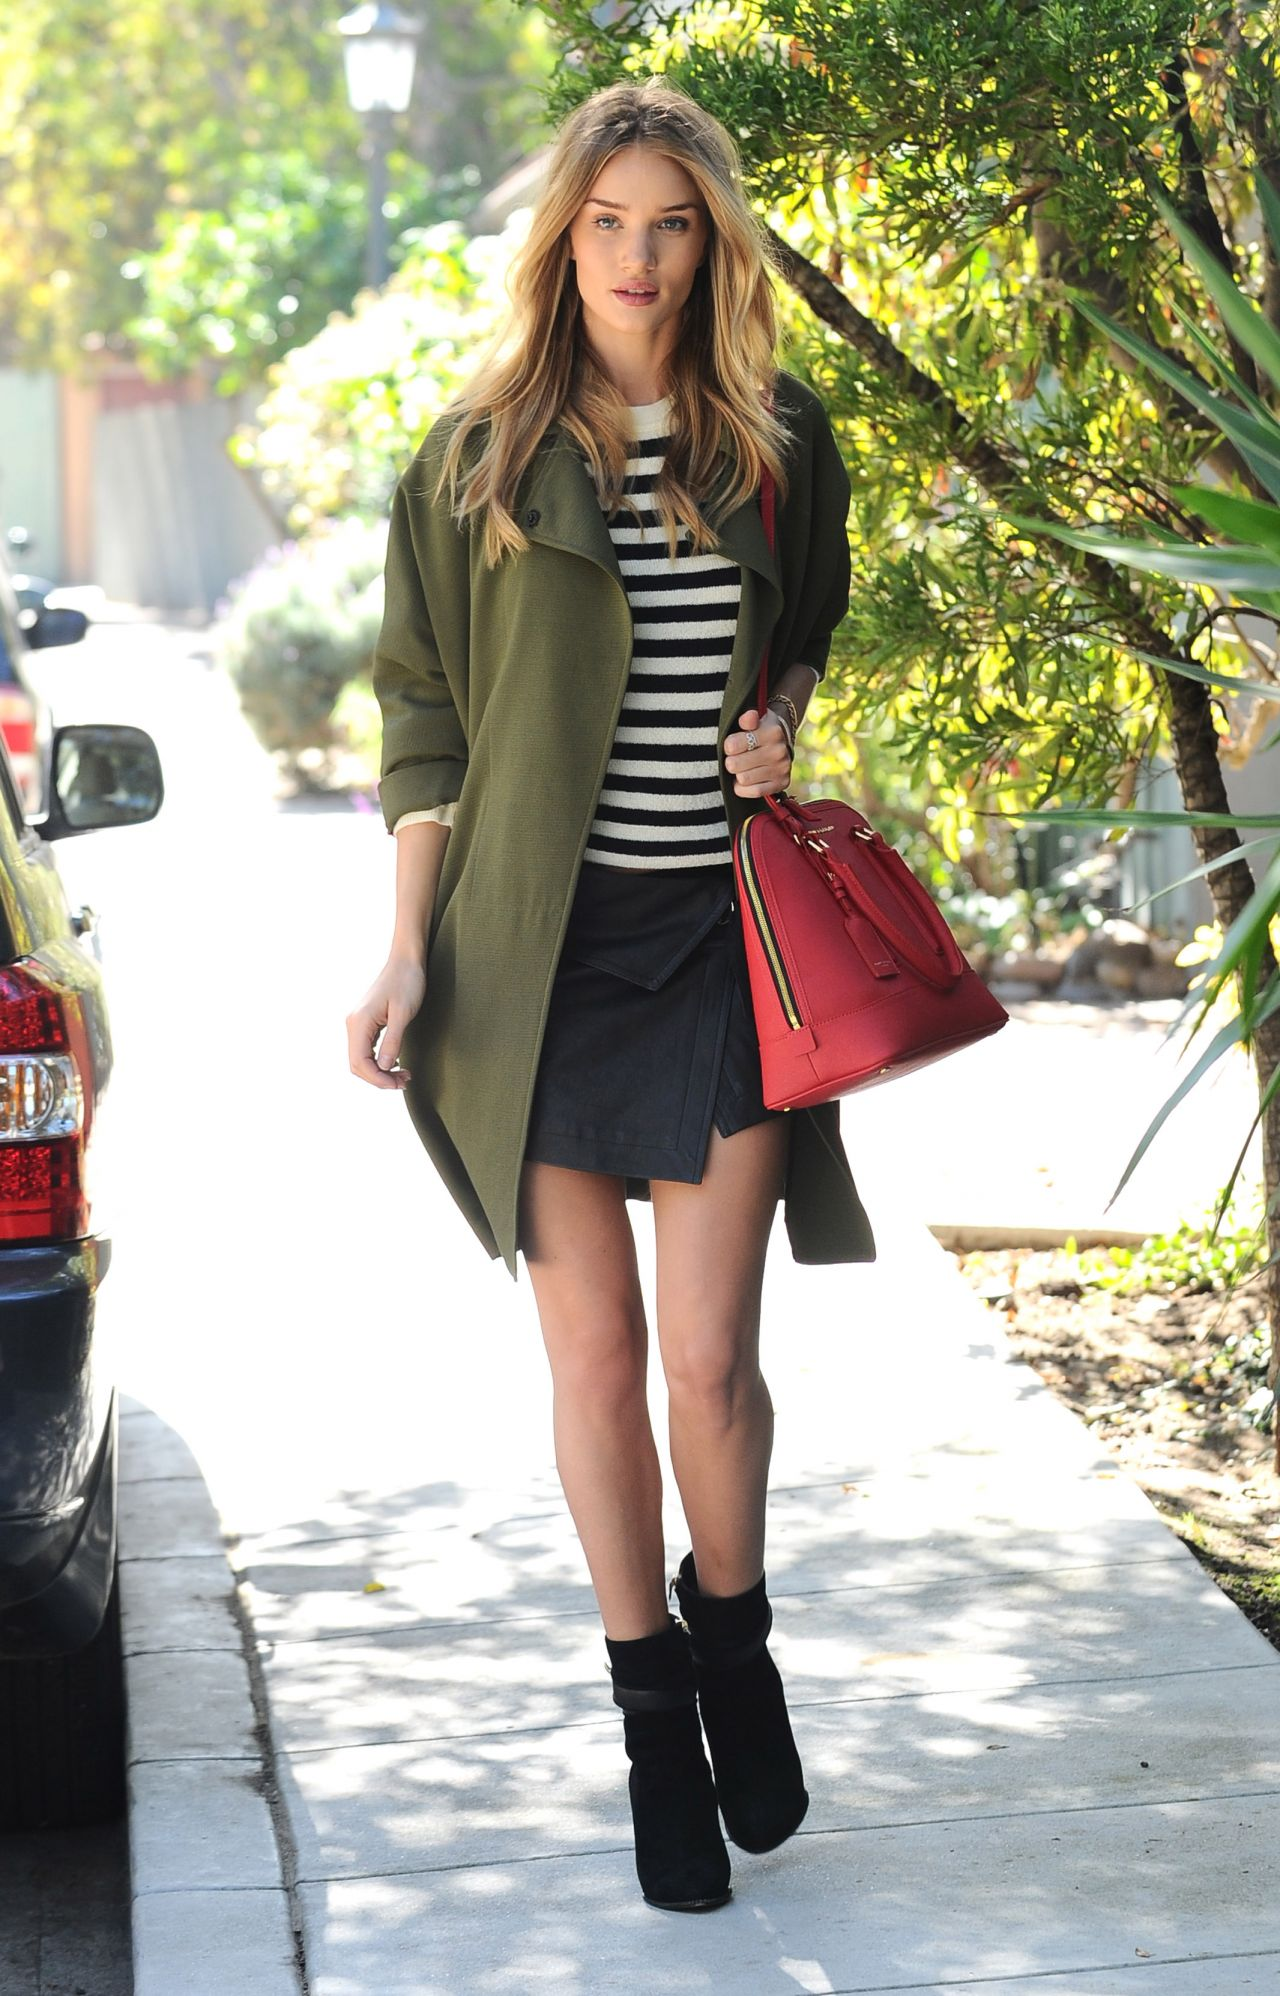 rosie-huntington-whiteley-street-style-out-in-los-angeles-october-2014_1.jpg